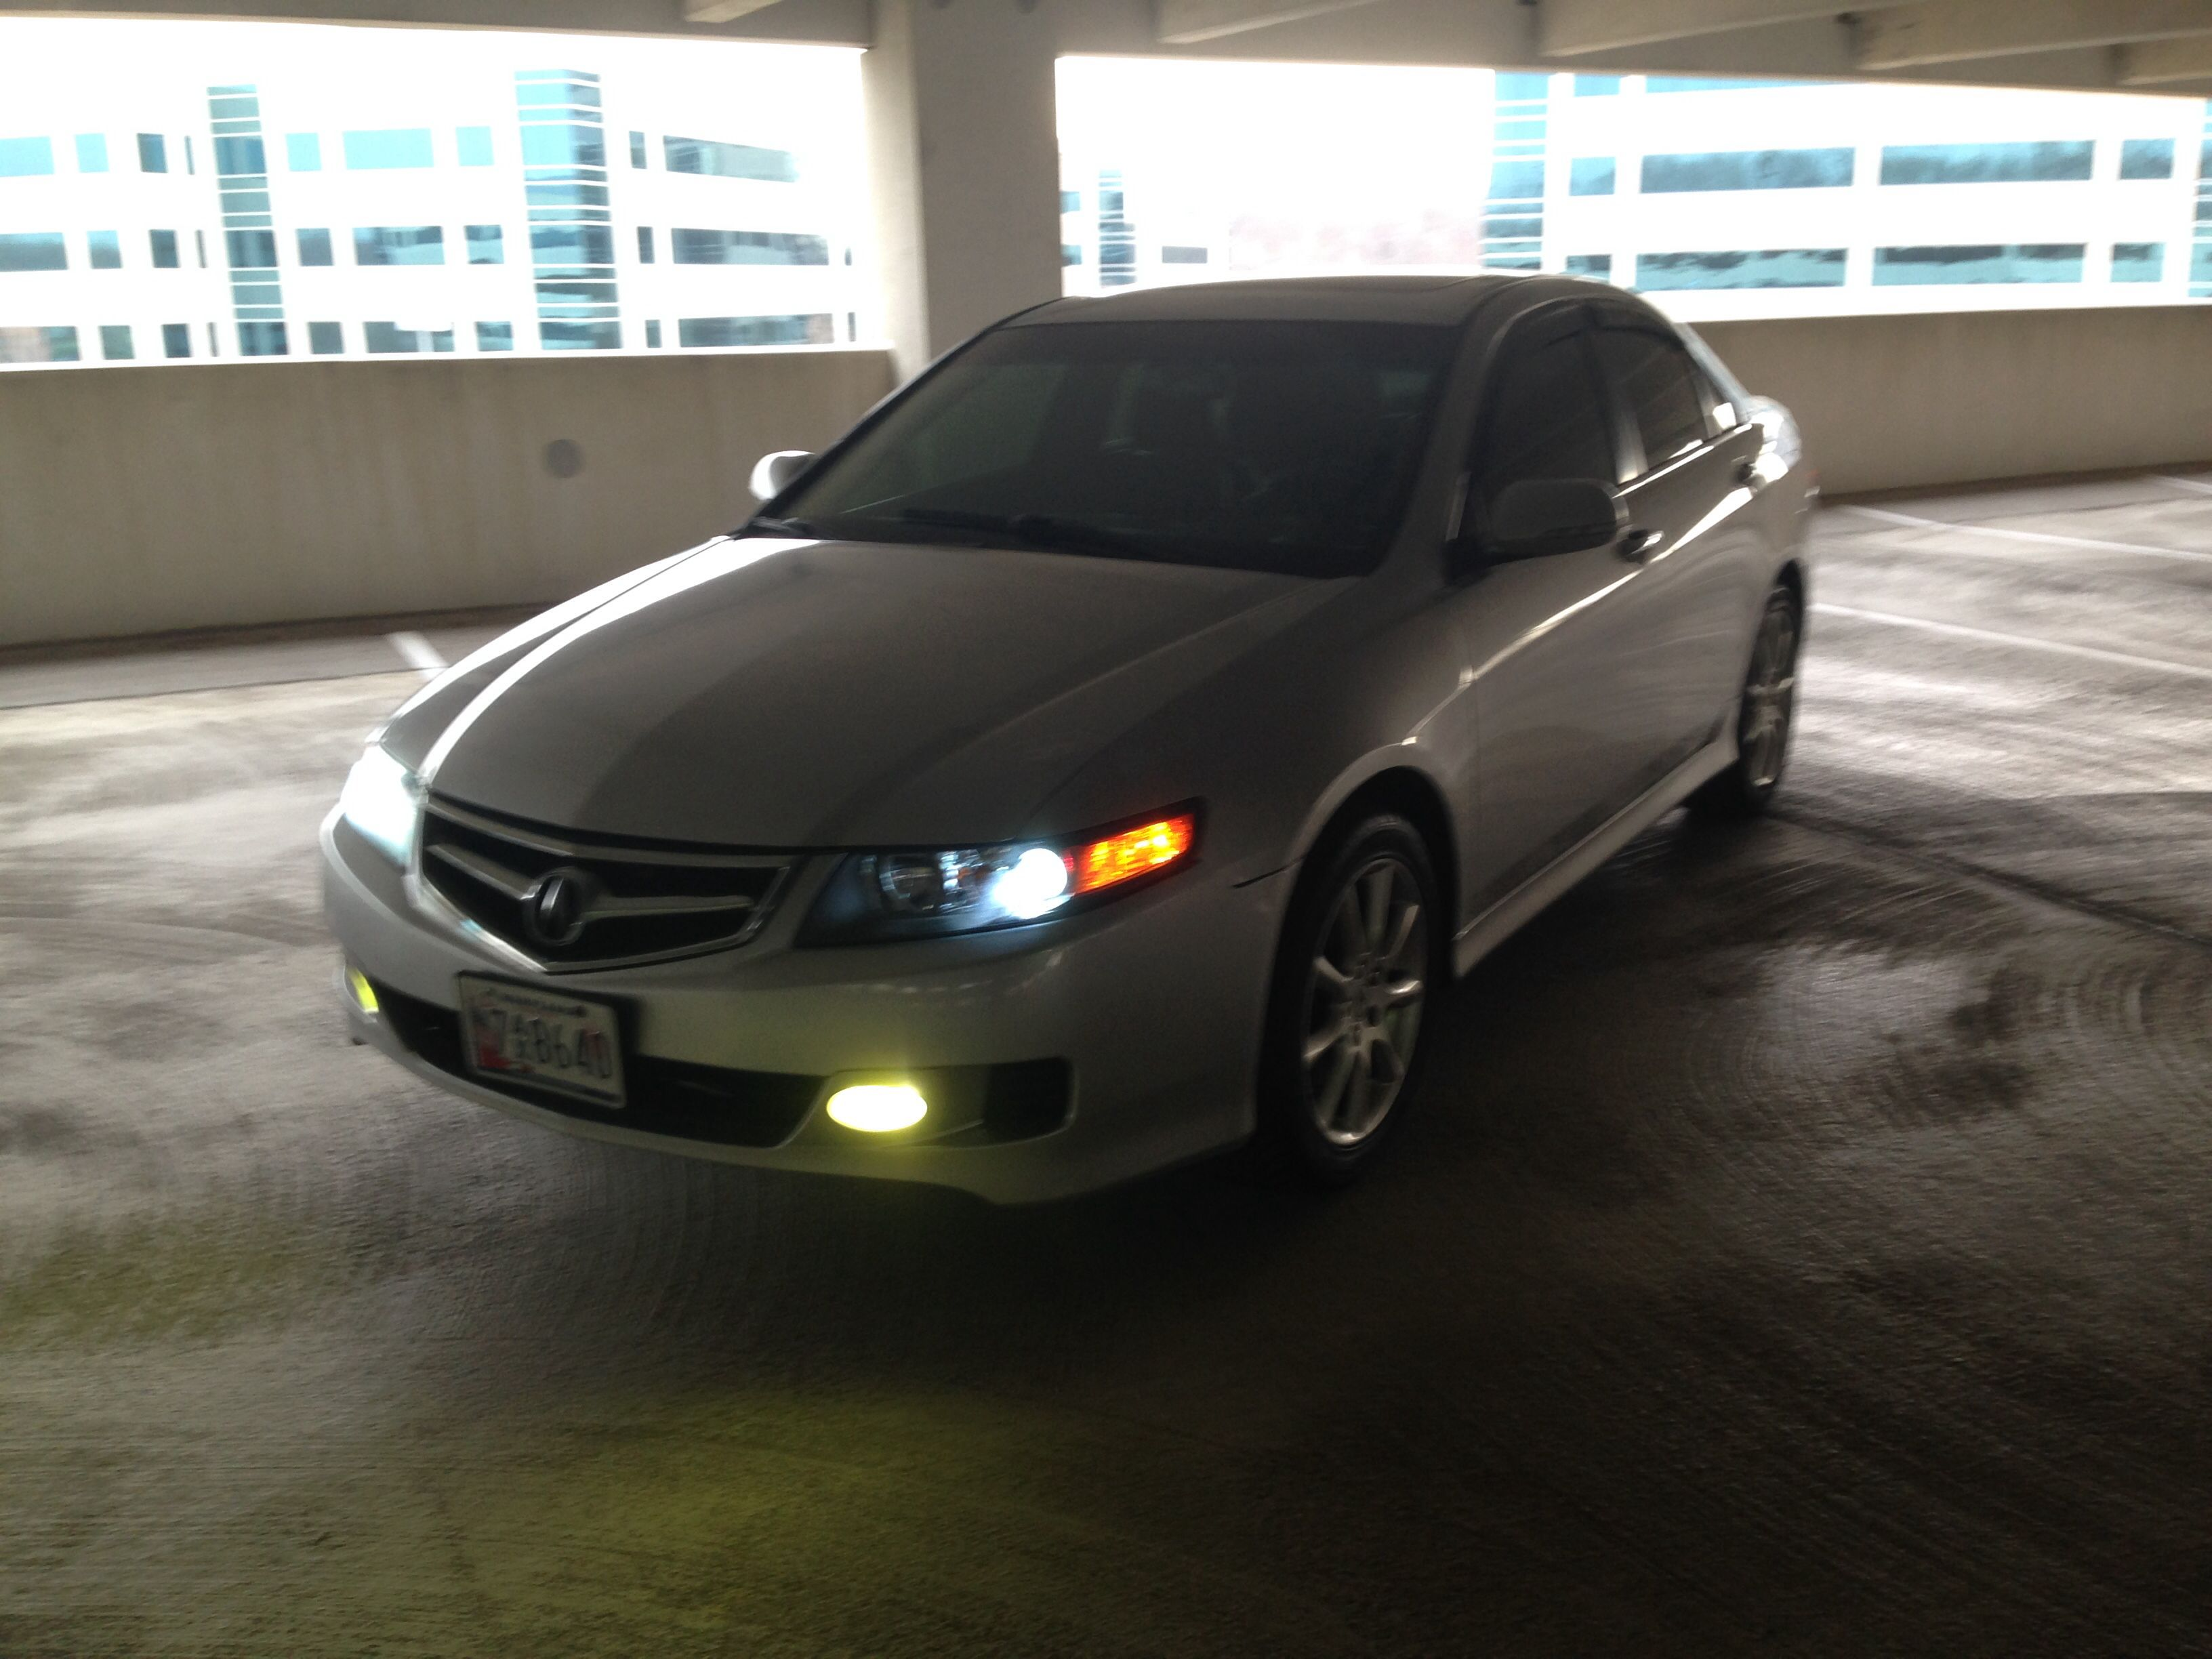 K Headlights K Fog Lights My Acura TSX Pinterest - 2006 acura tsx headlights